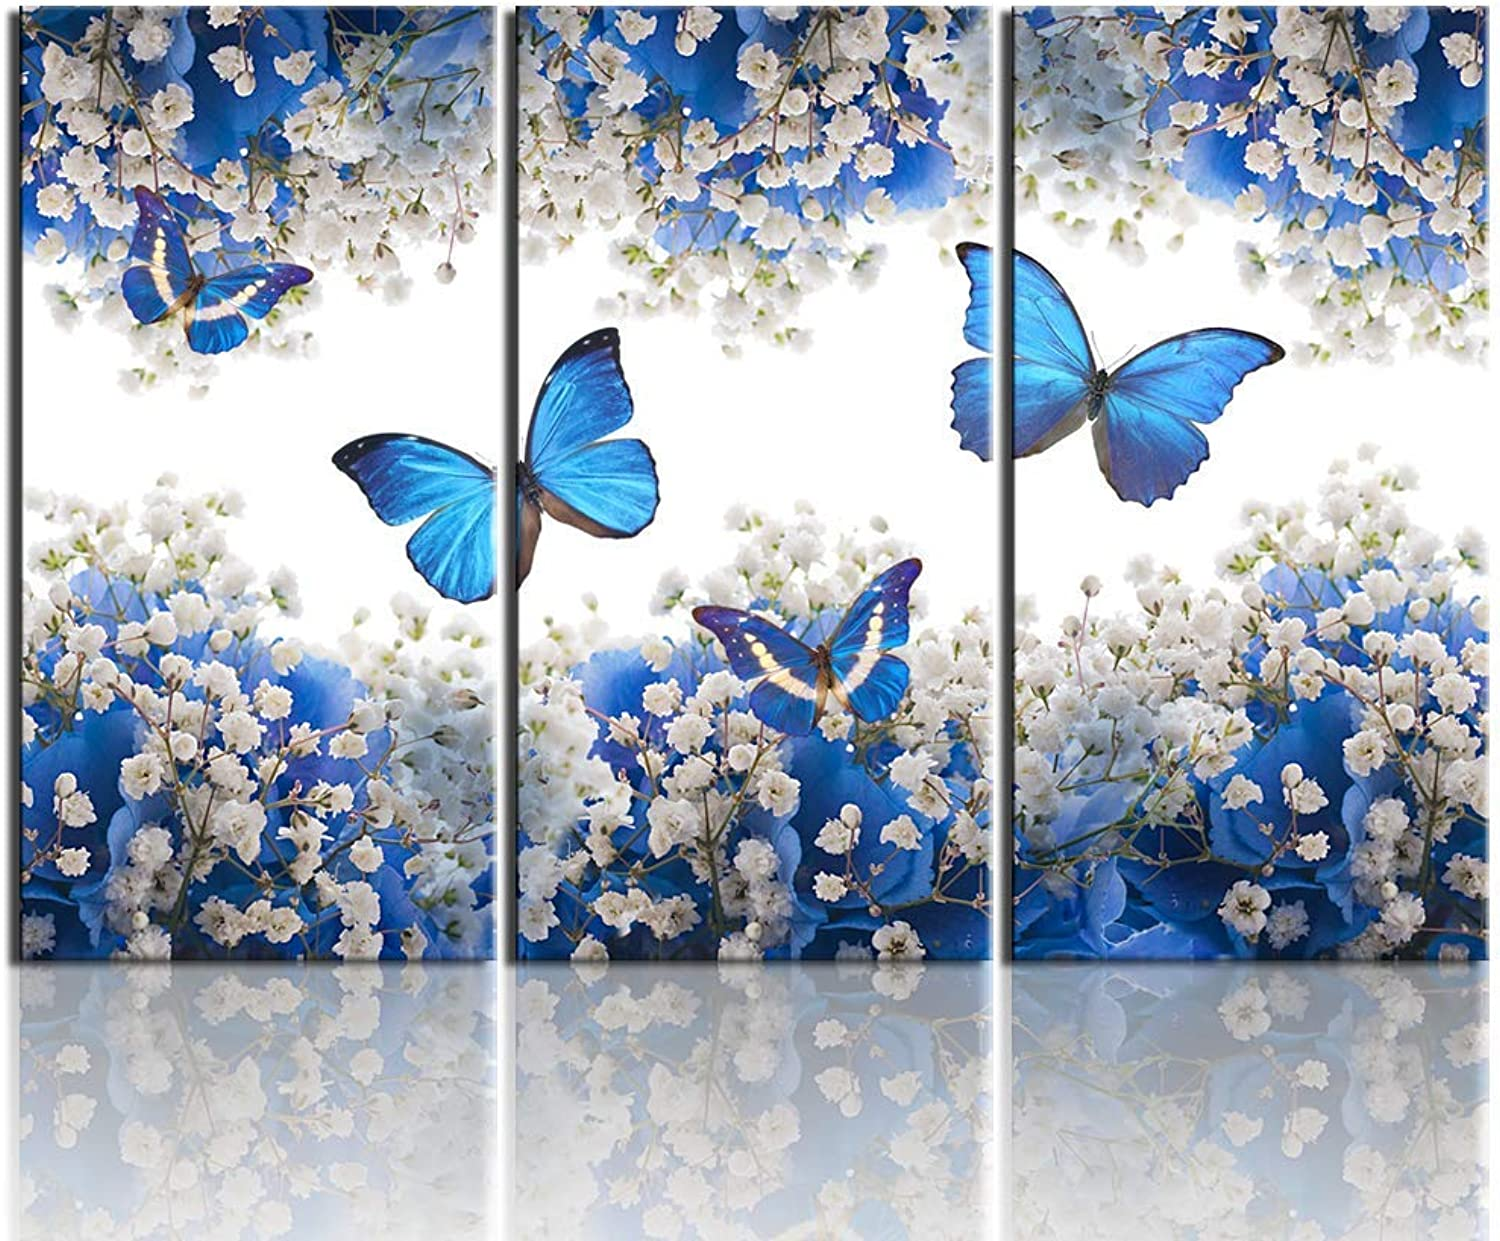 Biuteawal - 3 Panel Canvas Print bluee Butterfly Wall Art Flower Painting on Canvas Contemporary Artwork for Home Living Room Bedroom Wall Decor Ready to Hang